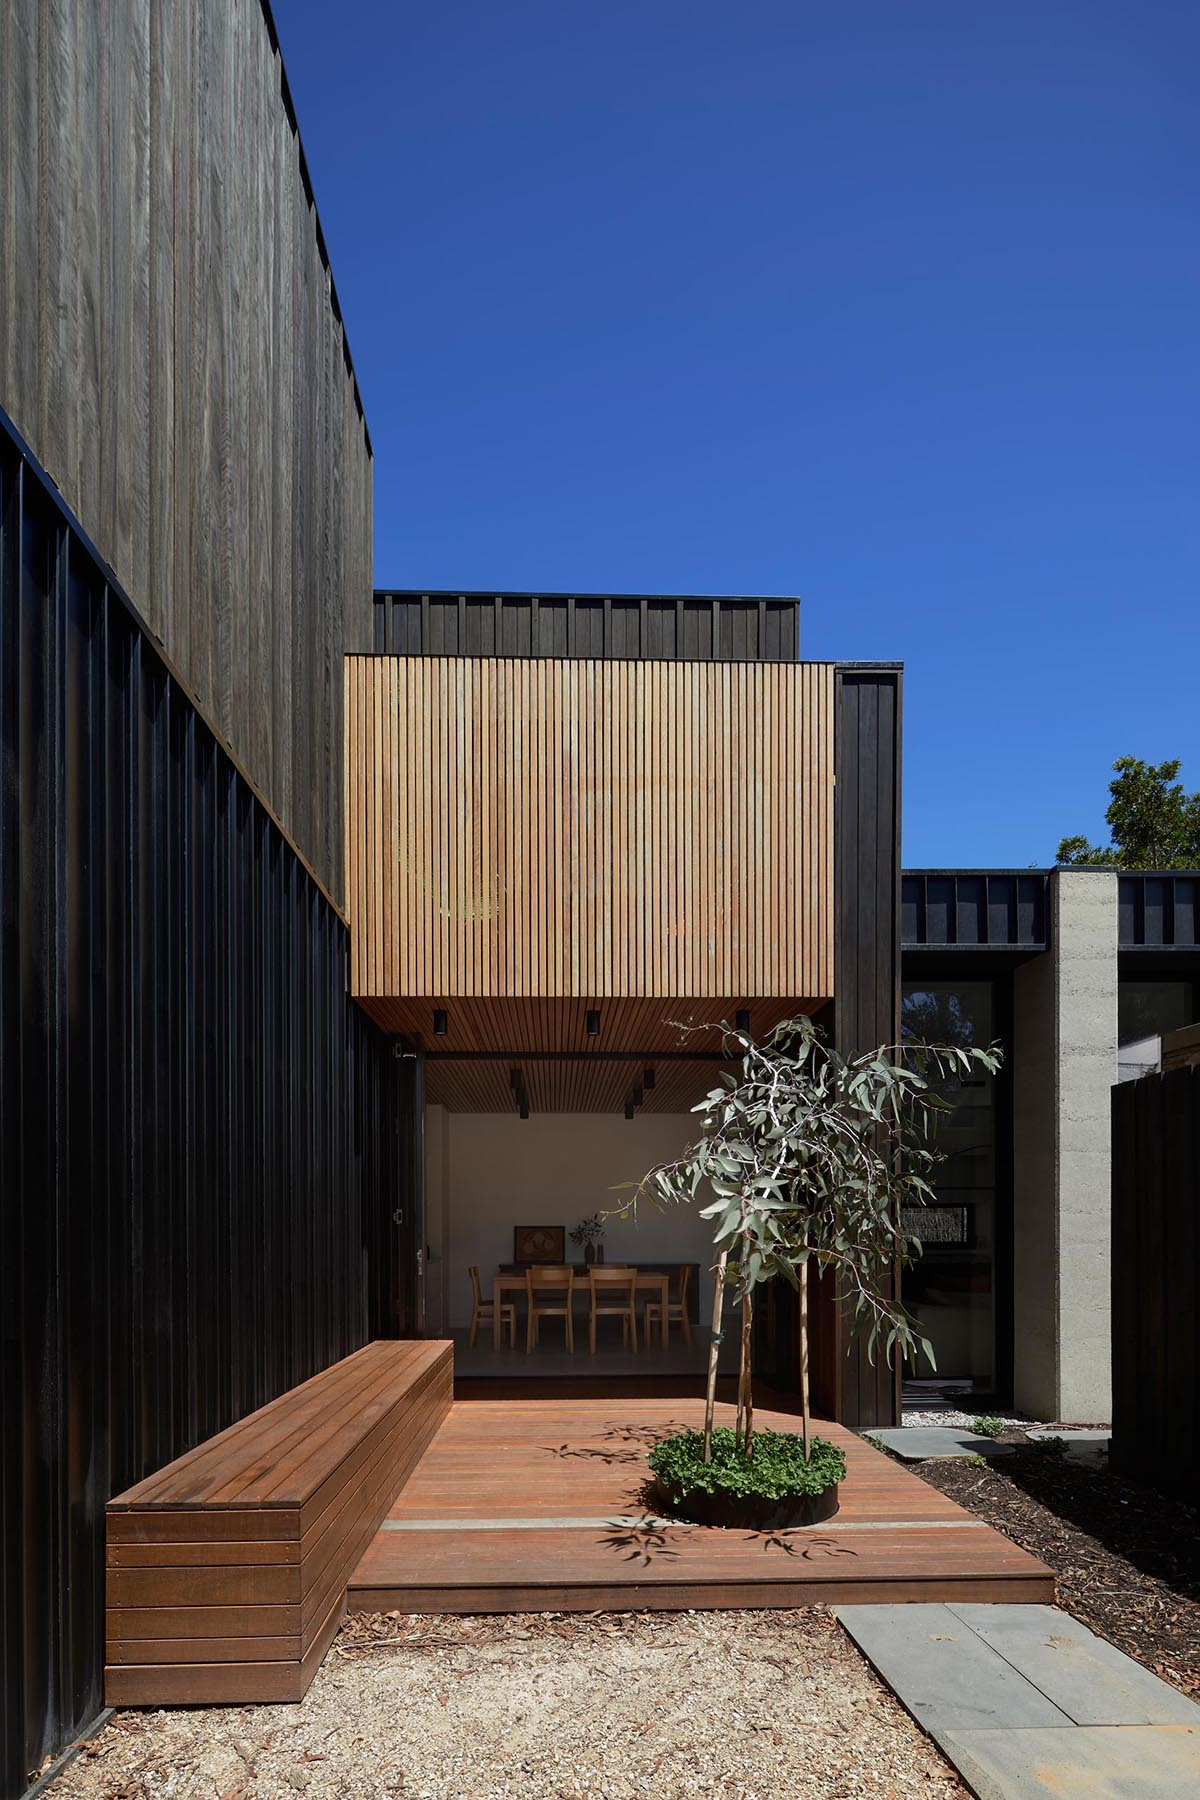 A modern home with dark wood and concrete exterior, and a deck with built-in bench made from lighting wood.